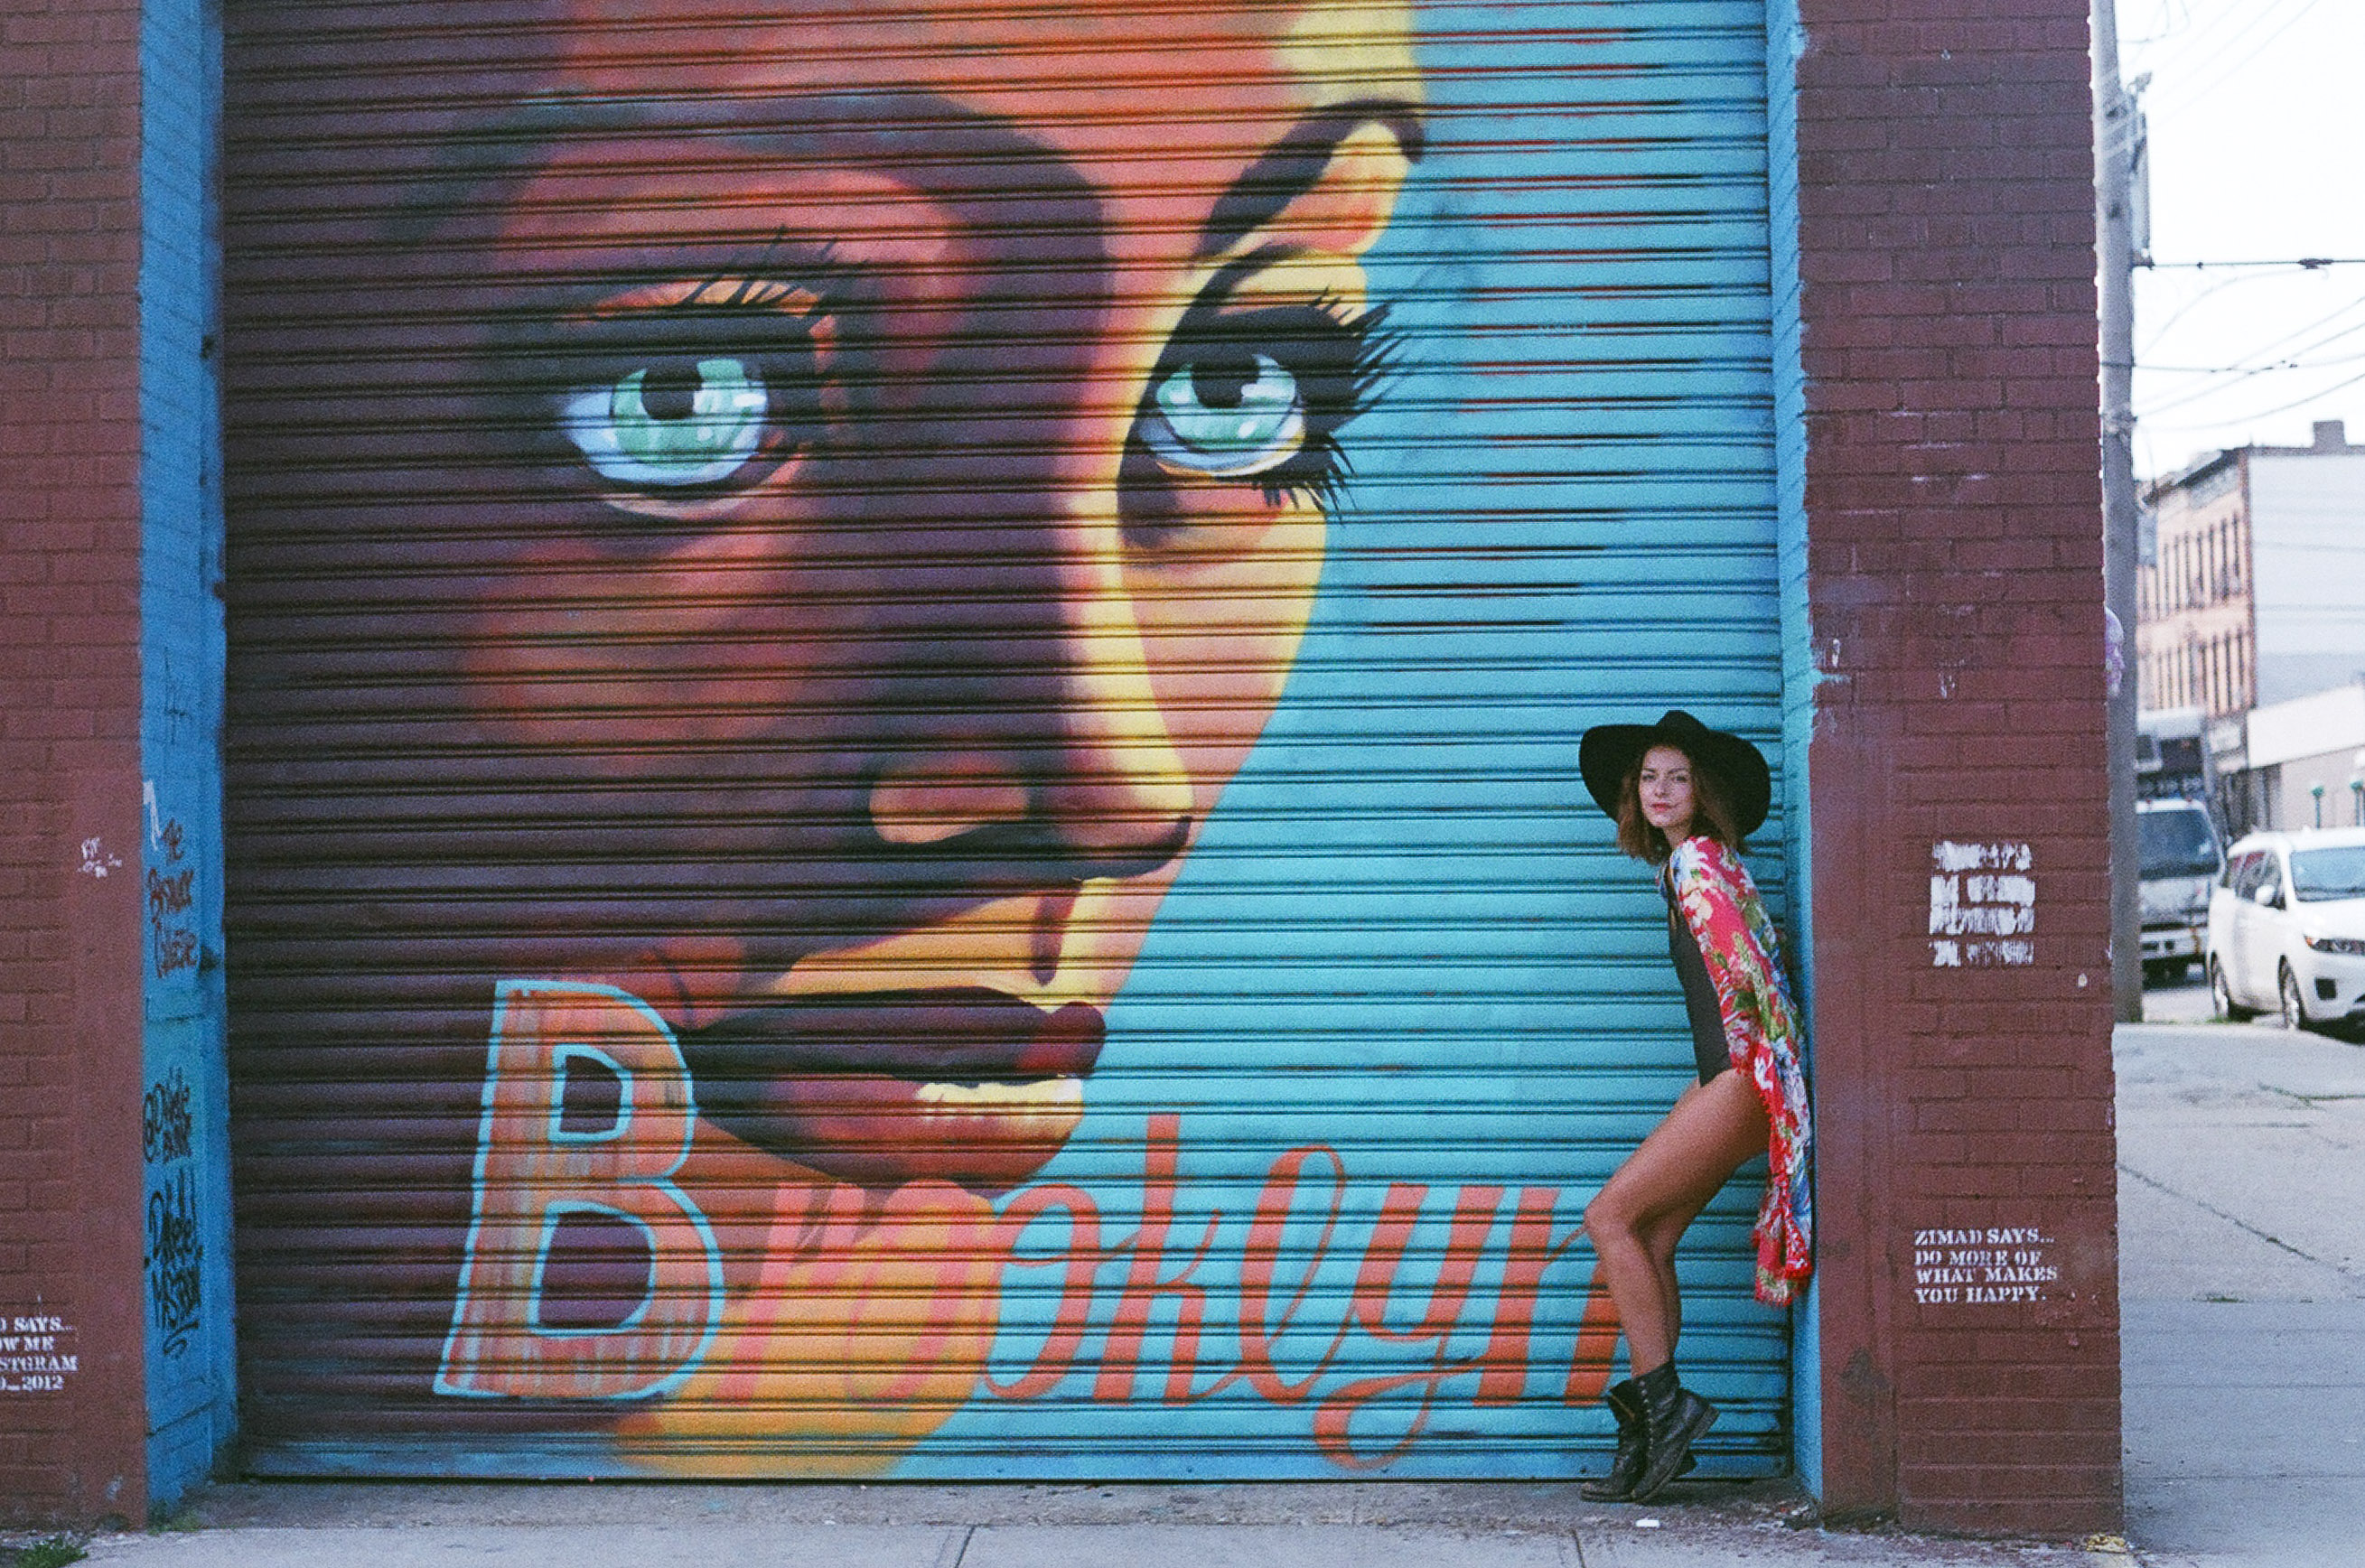 street art by Danielle Mastrion in bushwick photographed by cadencia photography.